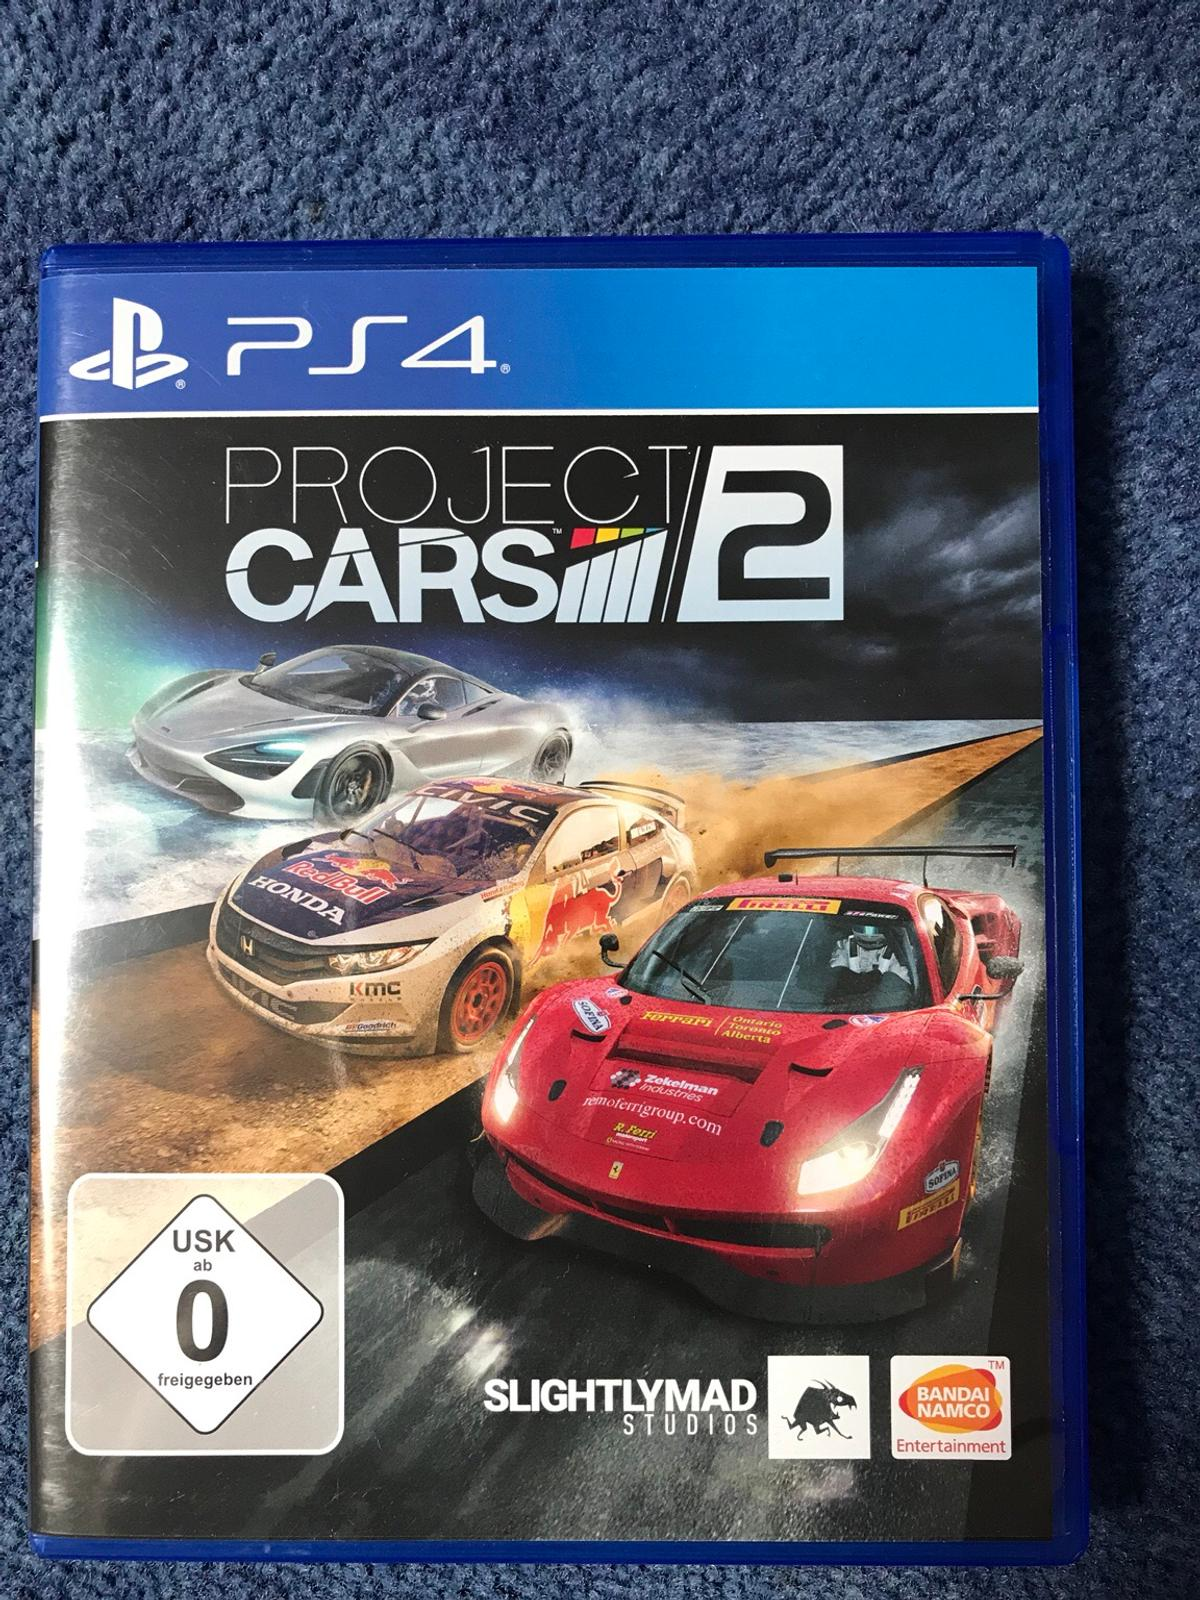 Project Cars 2 Ps4 In 55743 Idar Oberstein For 13 00 For Sale Shpock